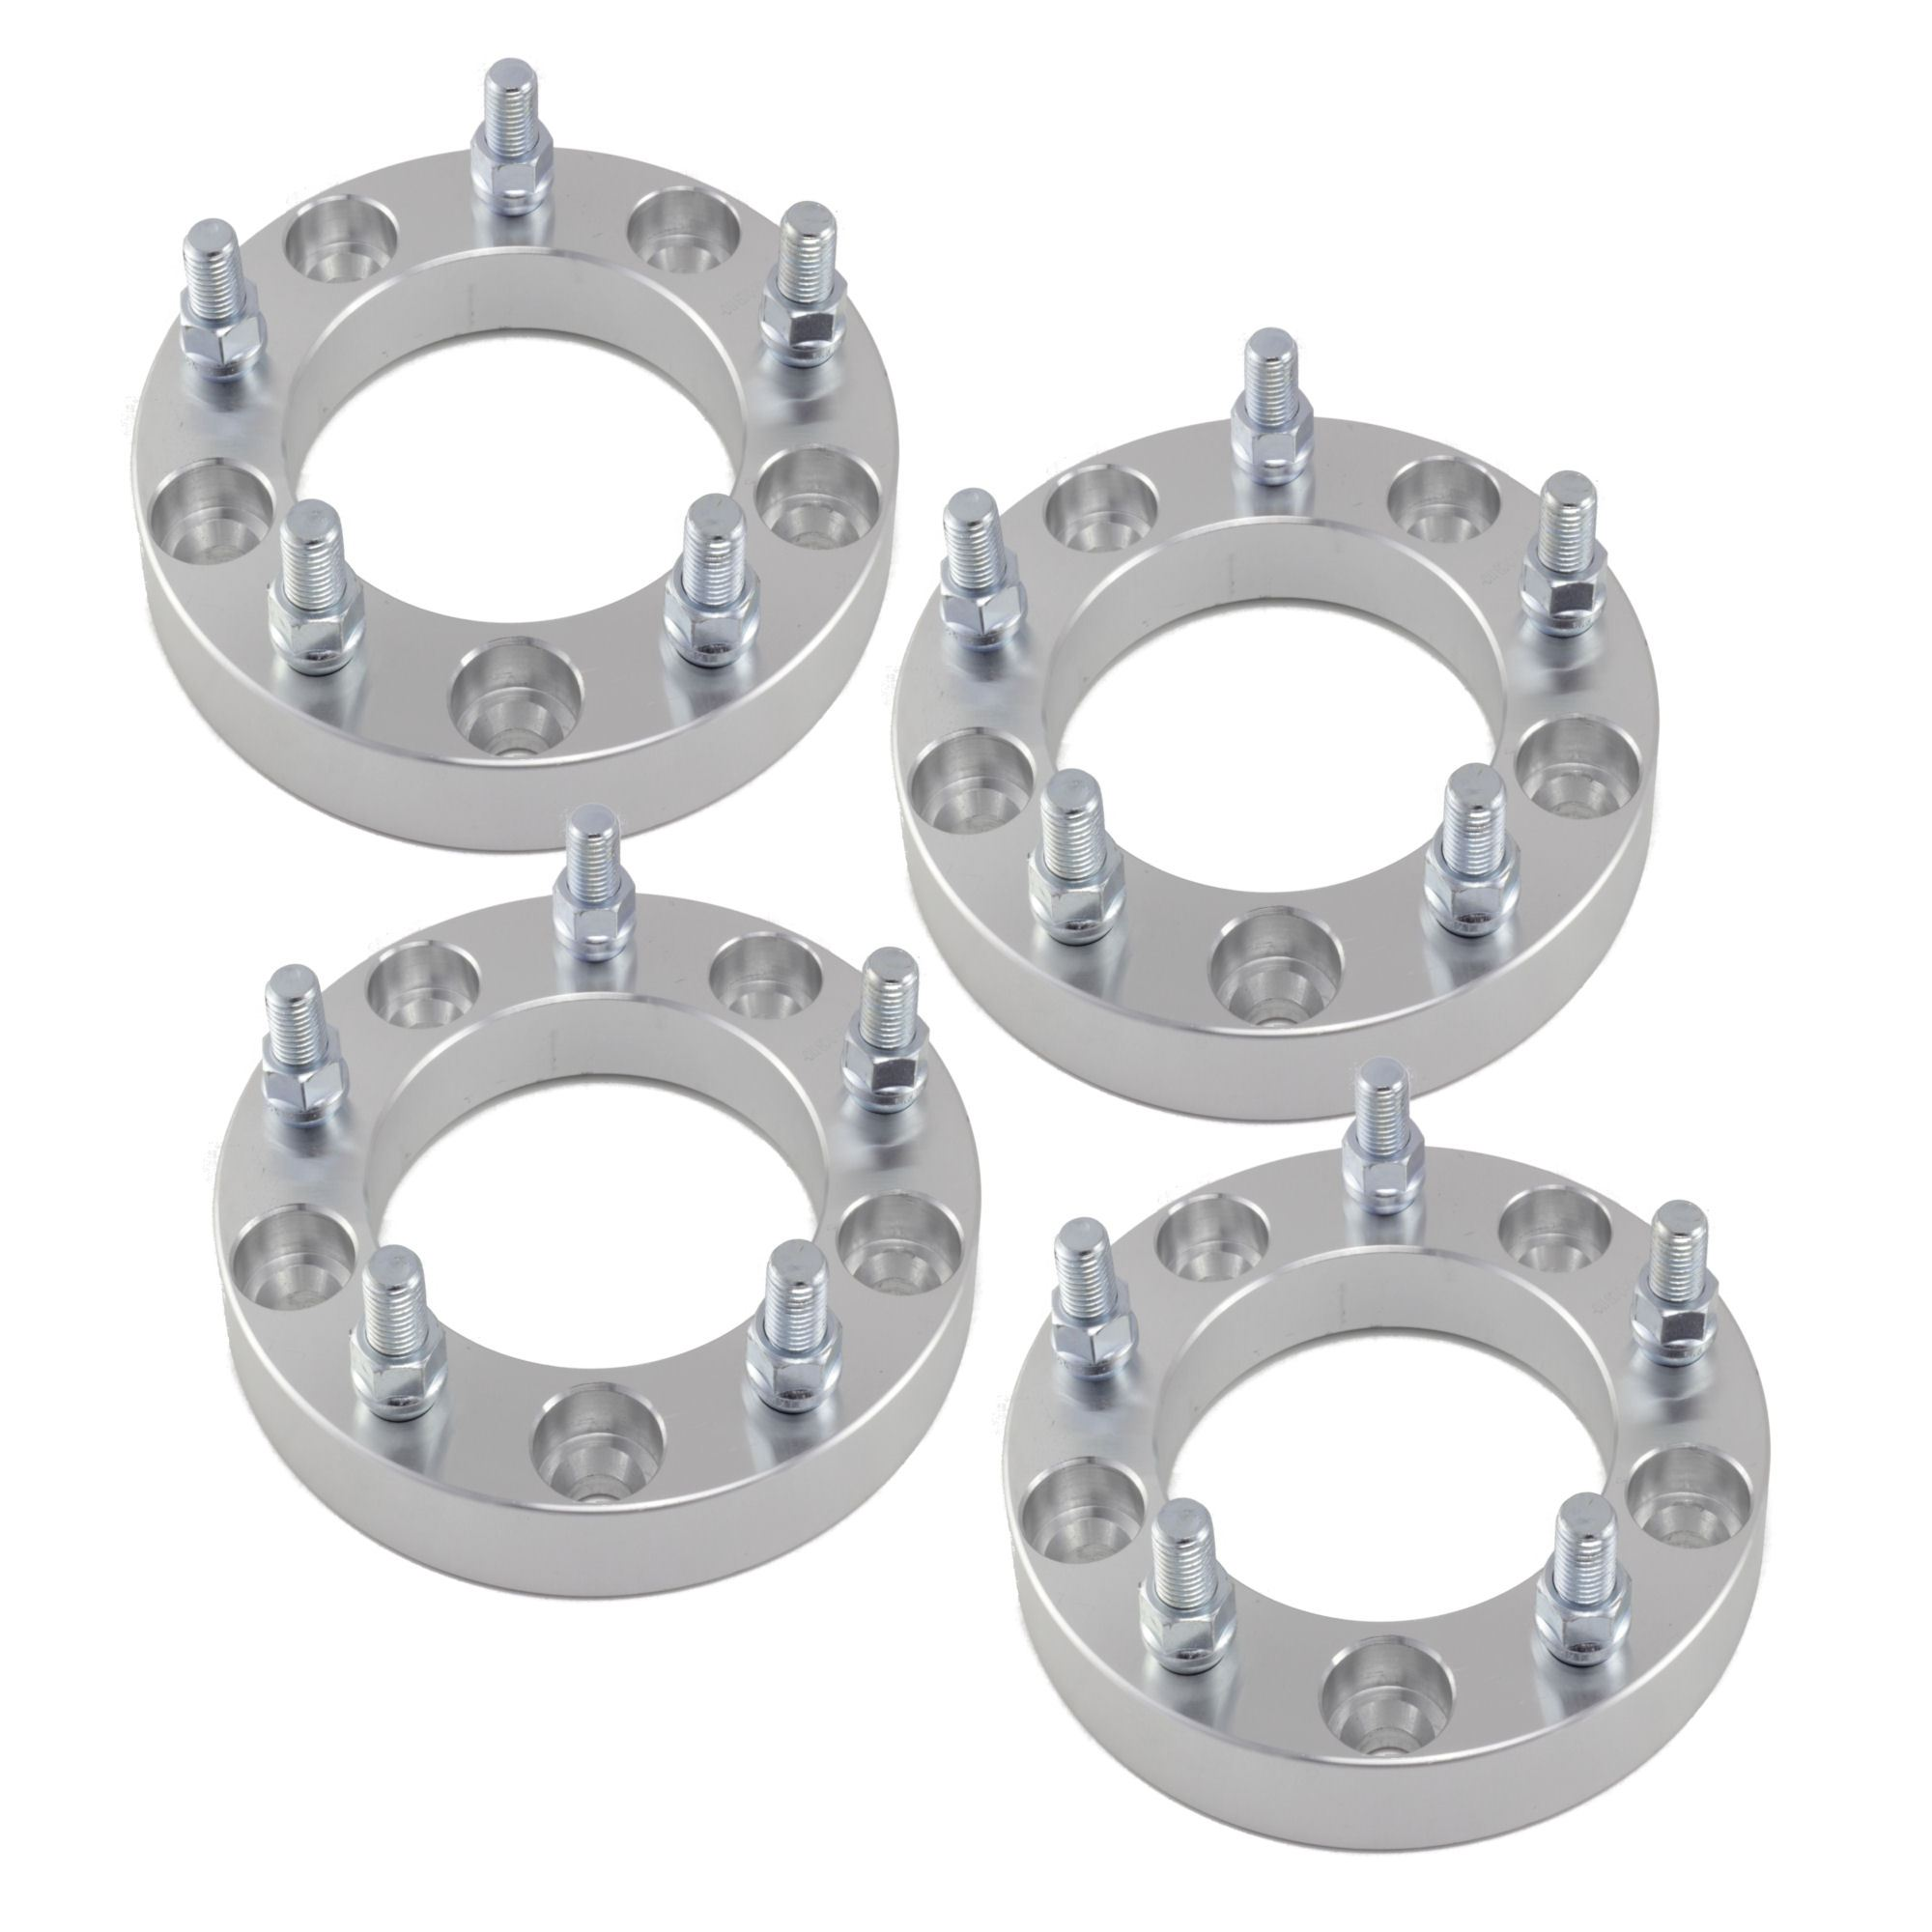 "4pcs 1"" Toyota 5x150 to 5x150 Wheel Spacers Adapters 14x1.5 Studs for 5 Lug Tundra 2007-2016 Billet Aluminum 6061 T6"